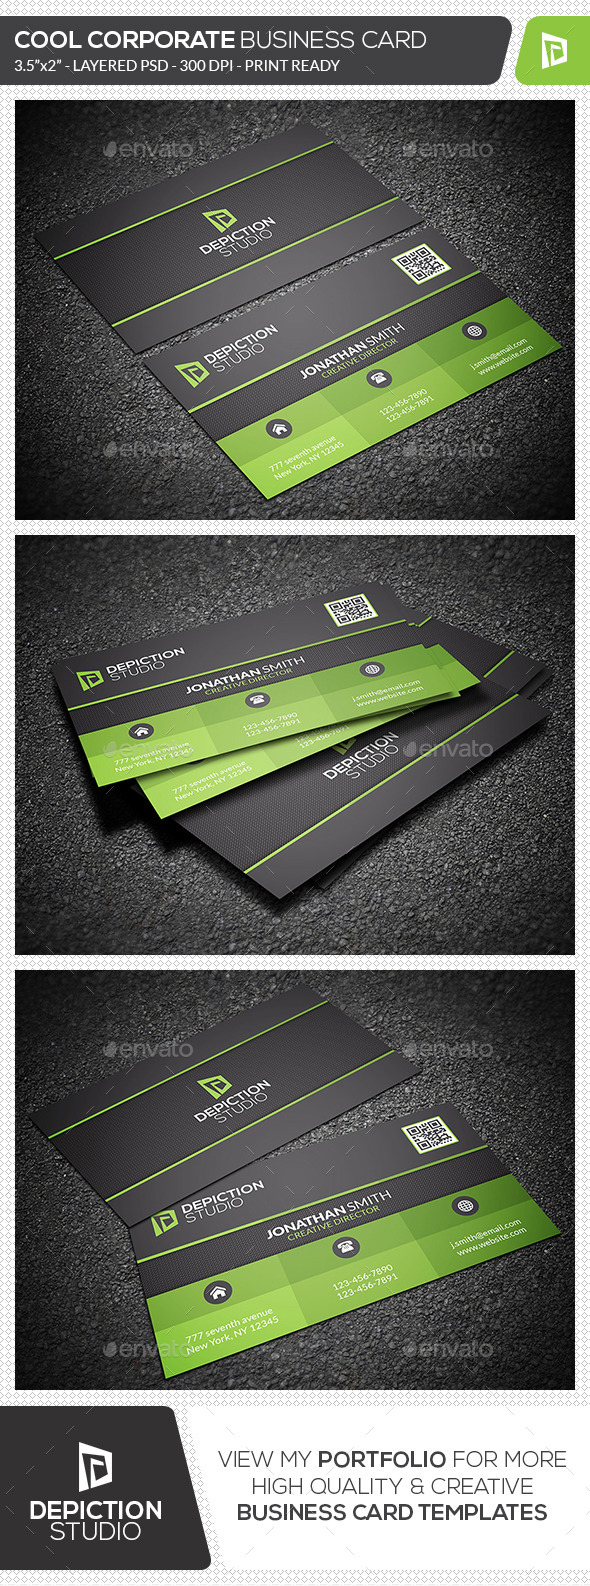 GraphicRiver Cool Corporate Business Card 11955700